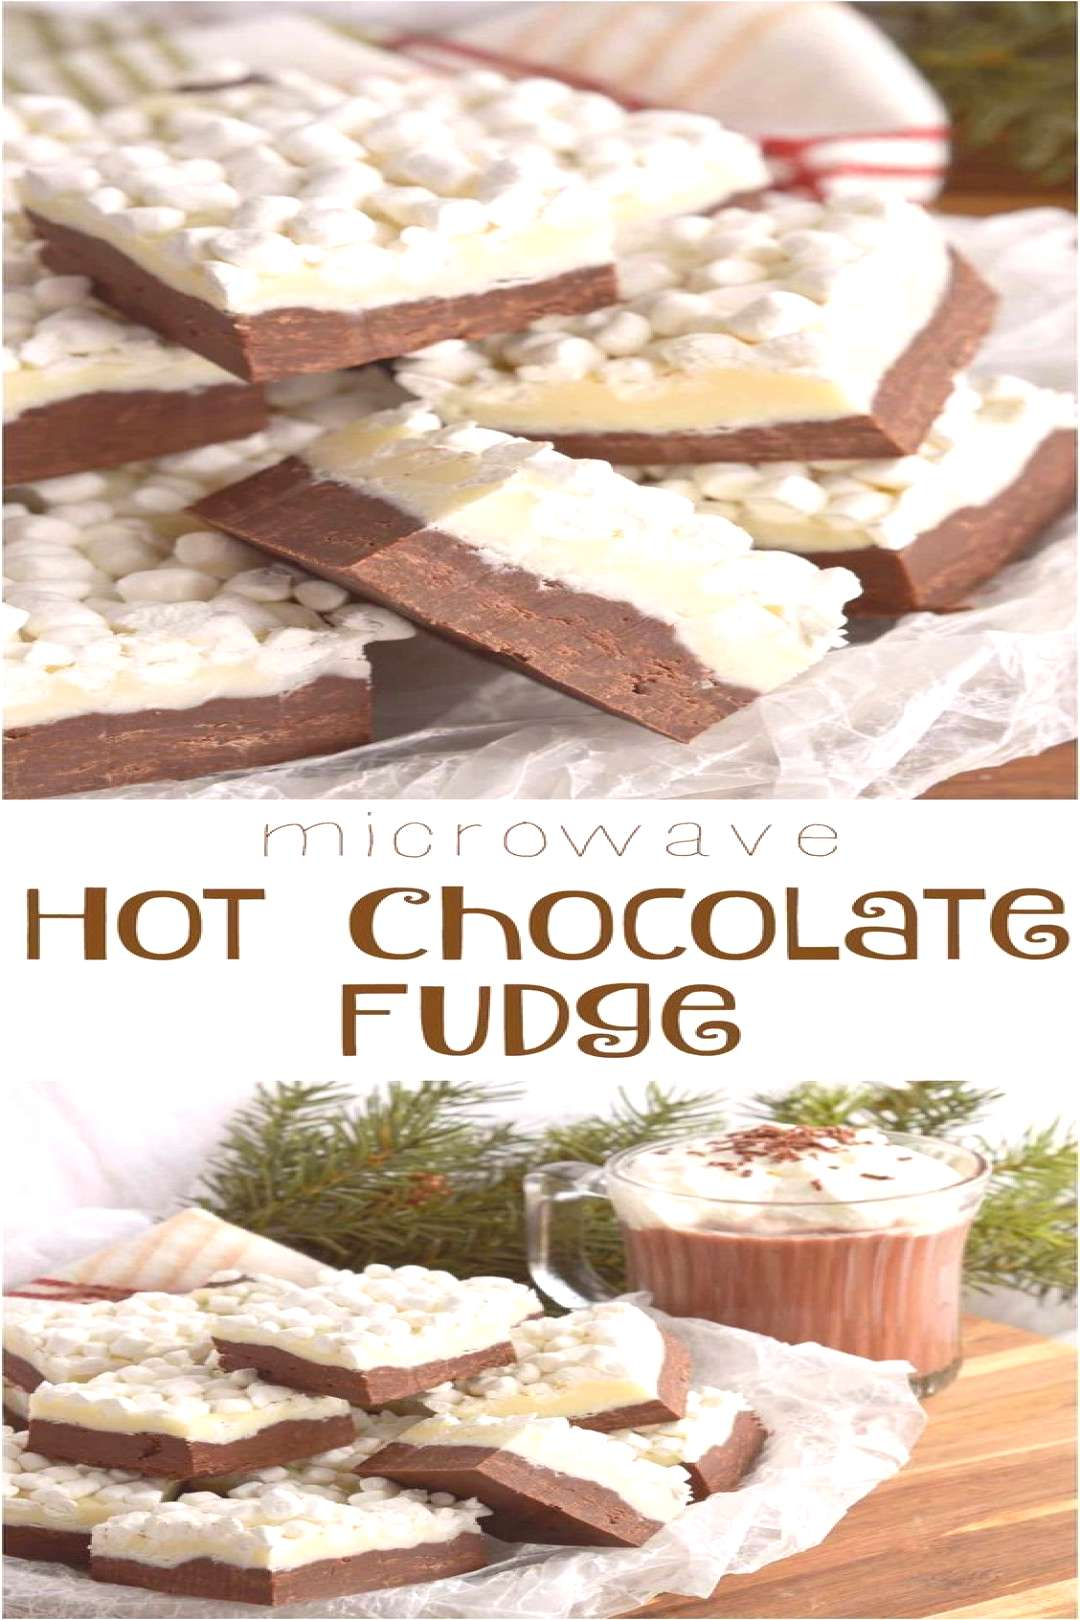 The BEST Christmas Cookies, Fudge, Candy, Barks and Brittles Recipes – Favorites for Holiday Trea